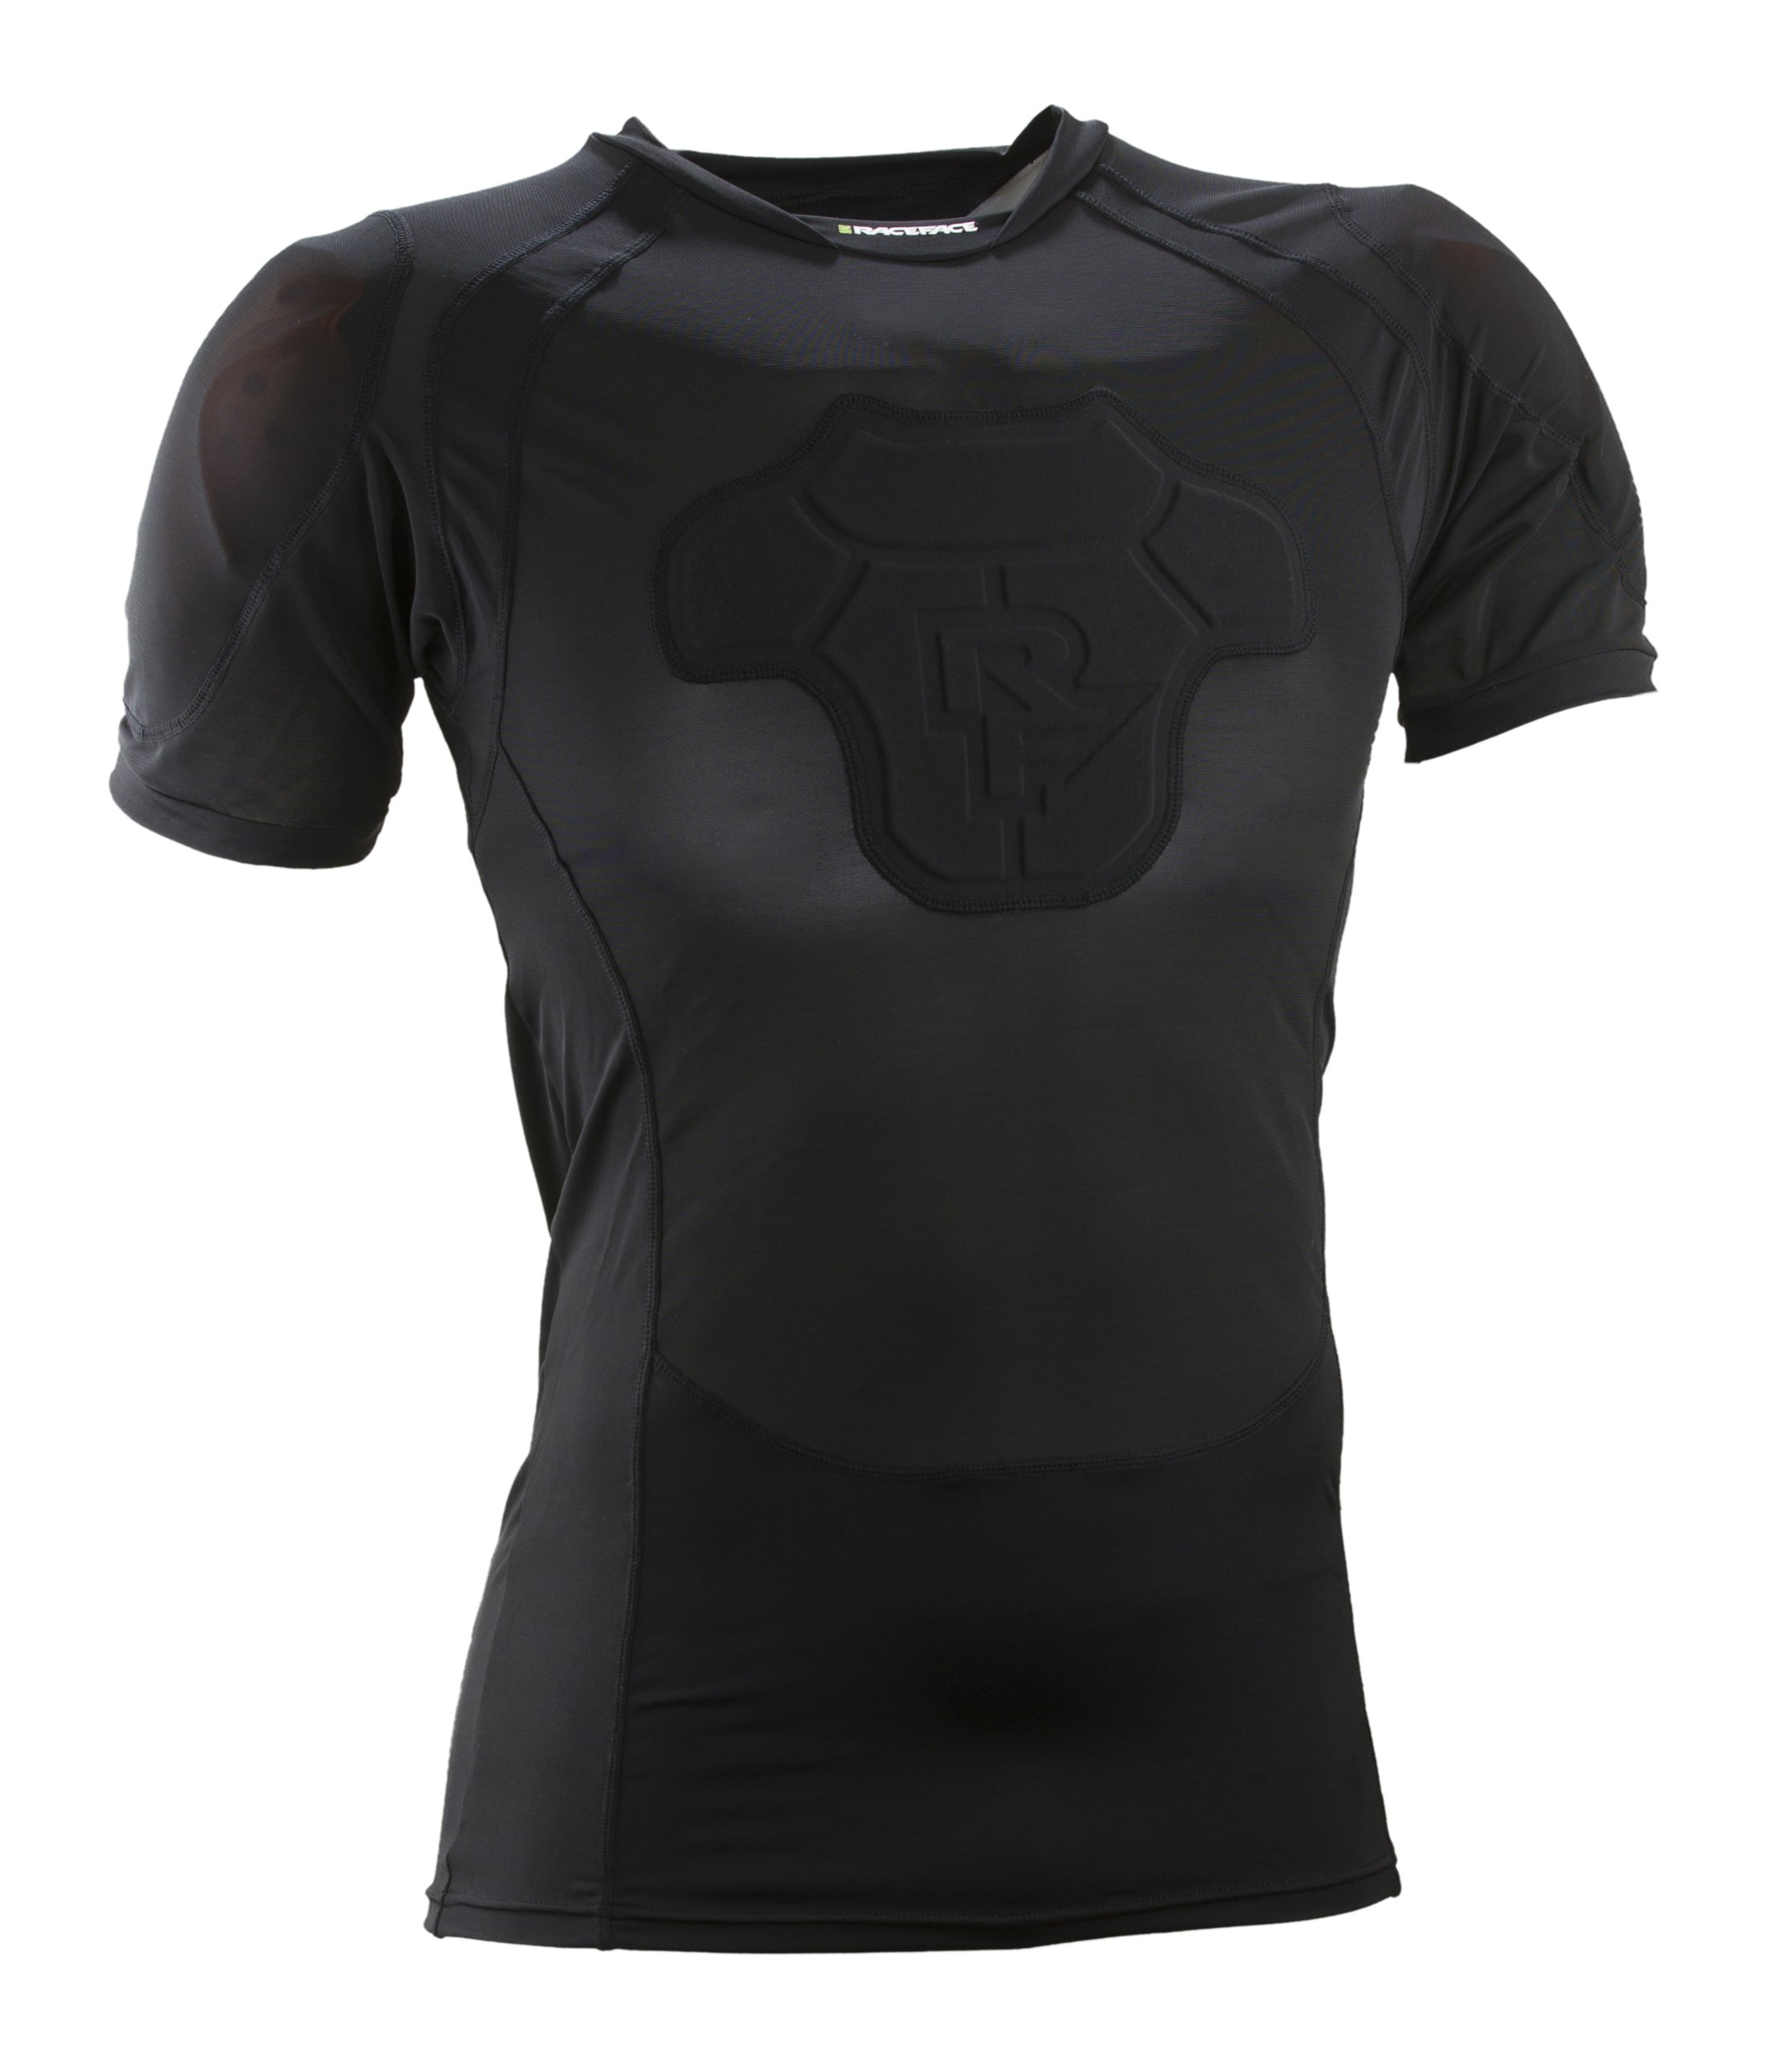 RaceFace Flank Core Guard, Stealth, X-Large